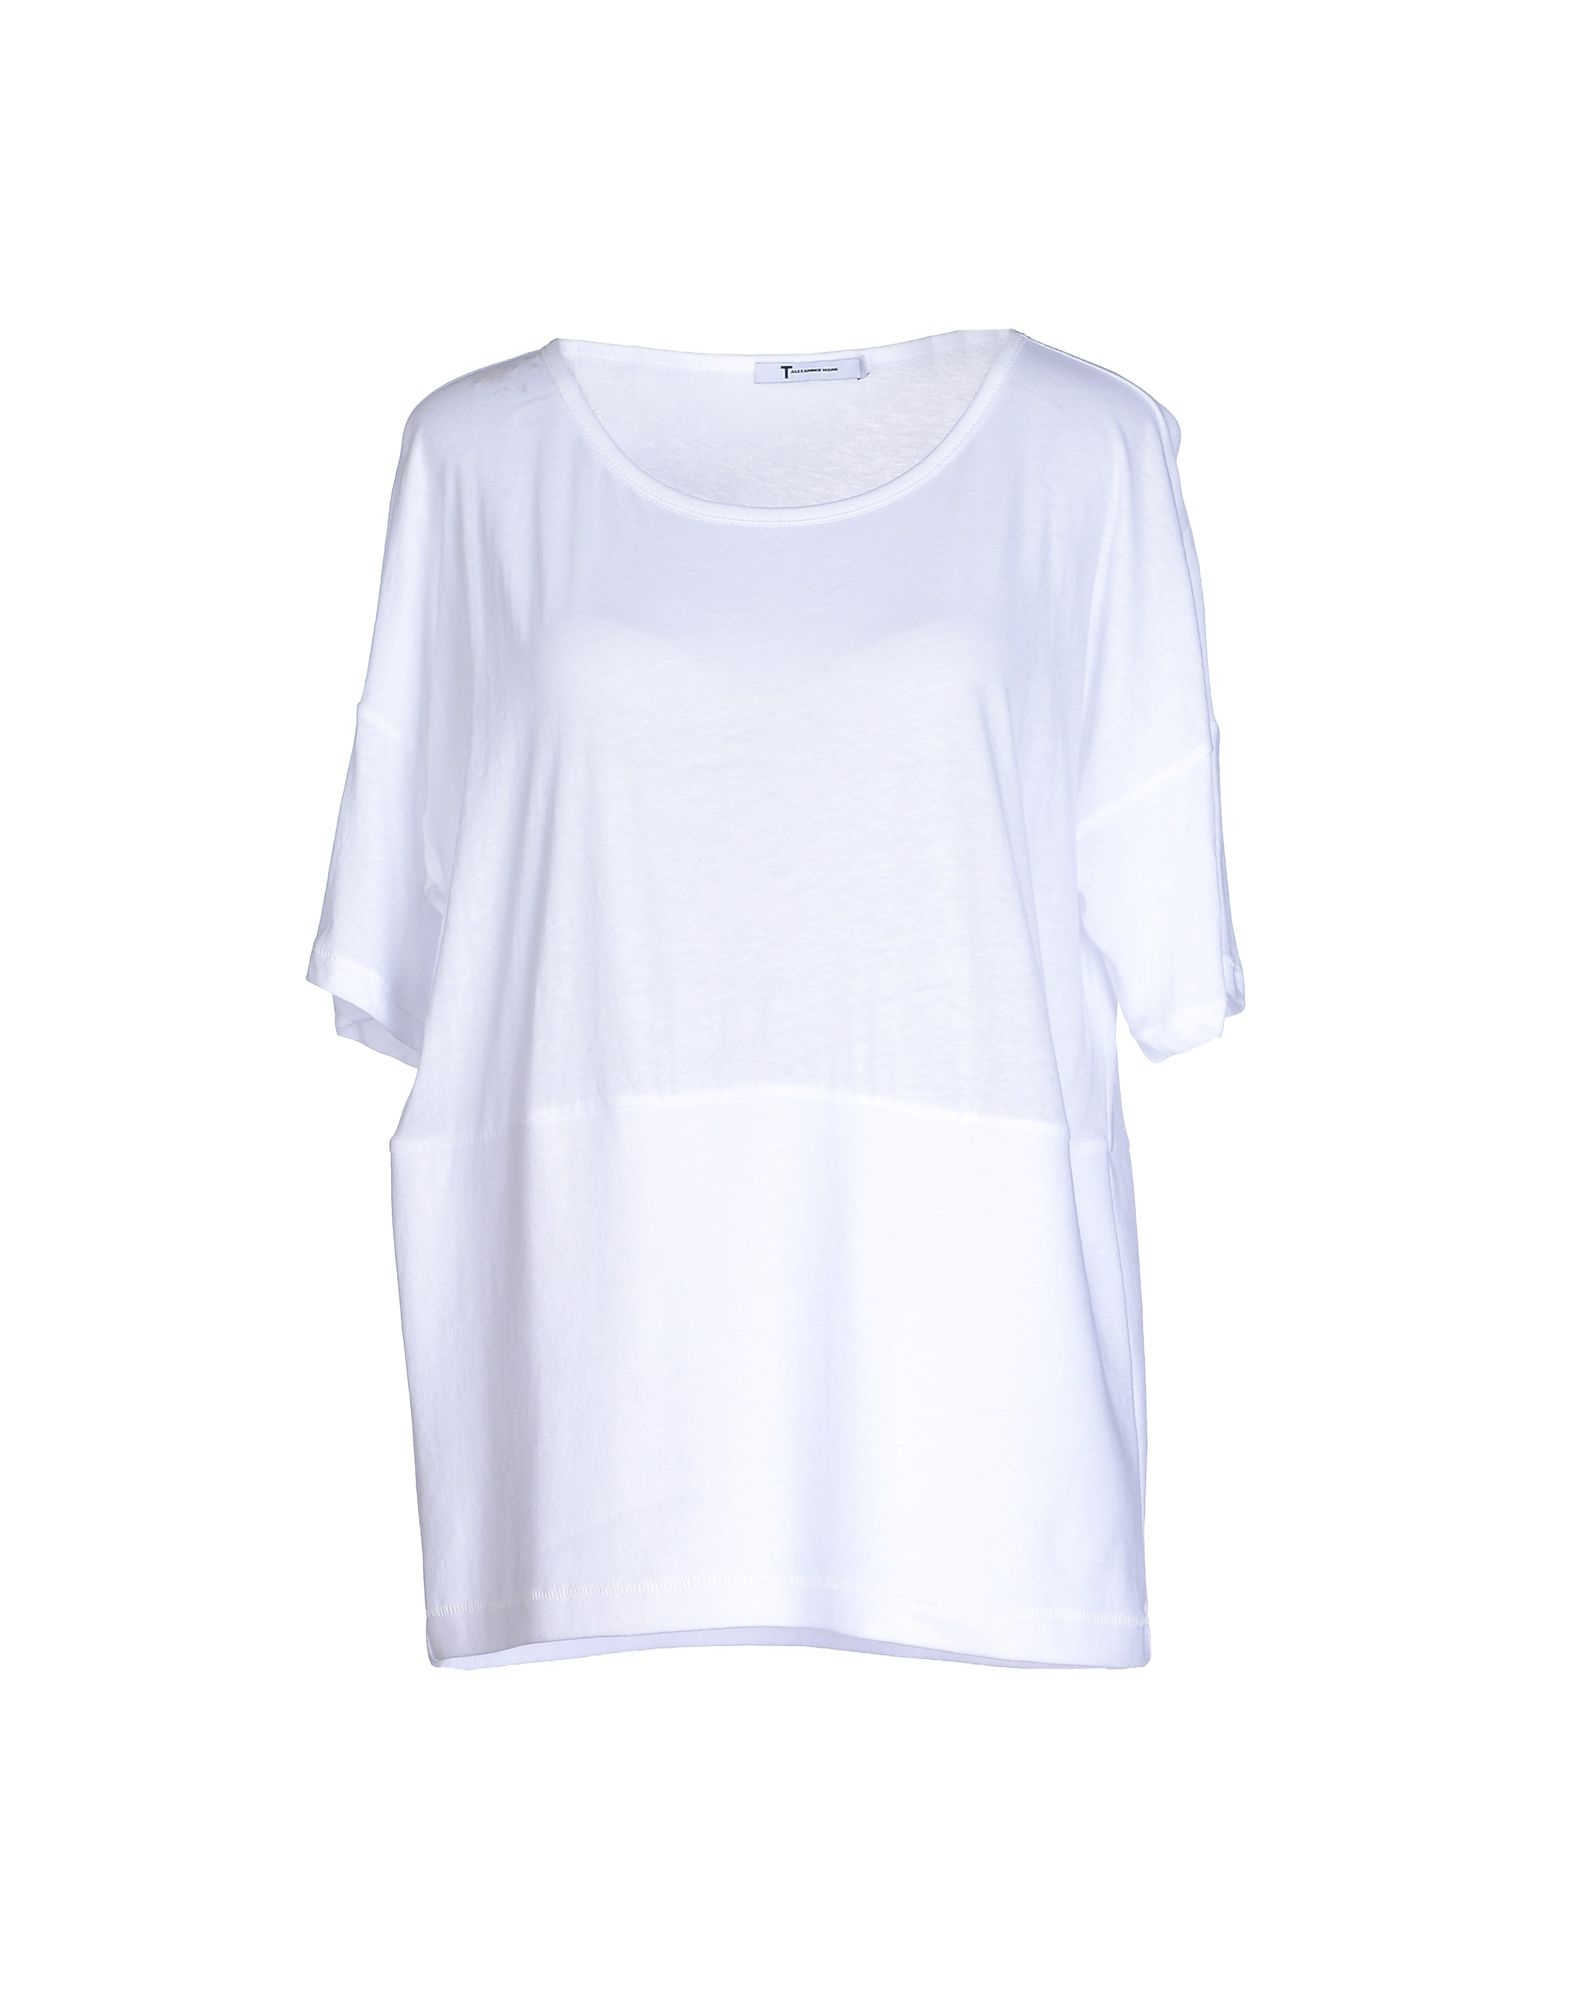 T by alexander wang t shirt in white lyst for T by alexander wang t shirt